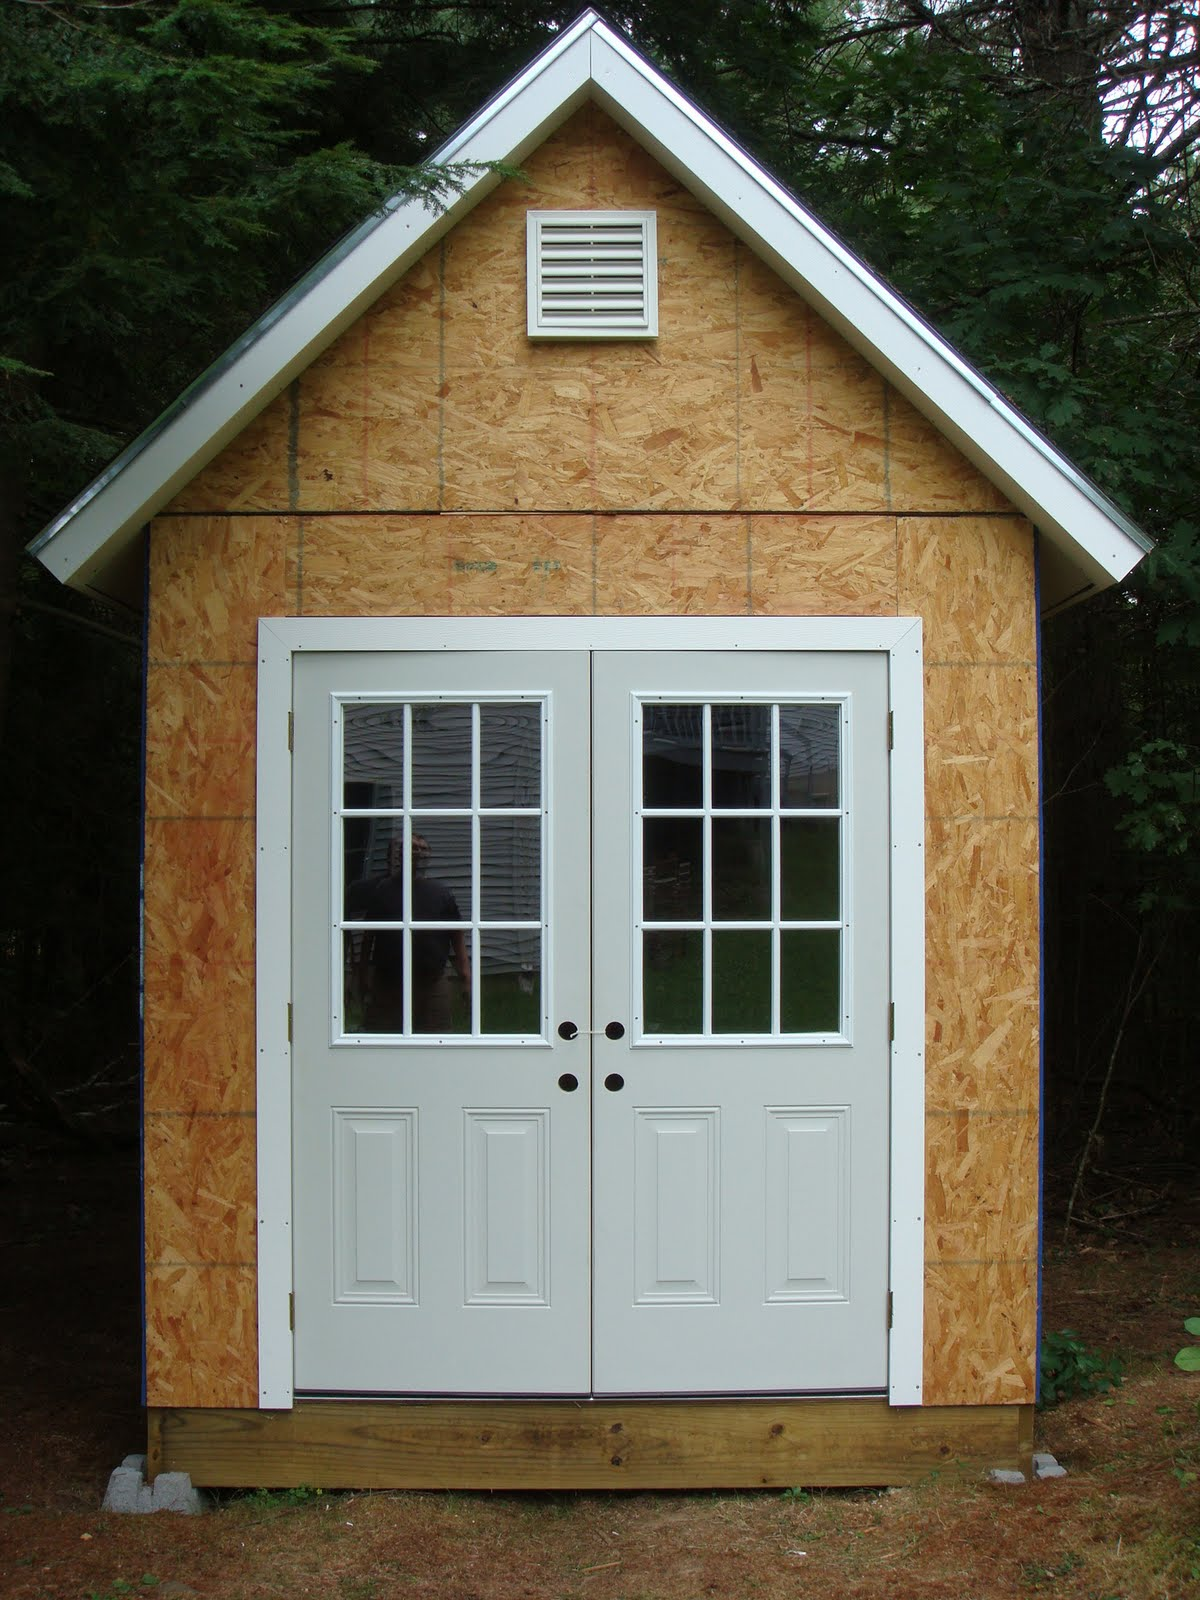 diy building shed door design tips shed blueprints On garden shed door designs